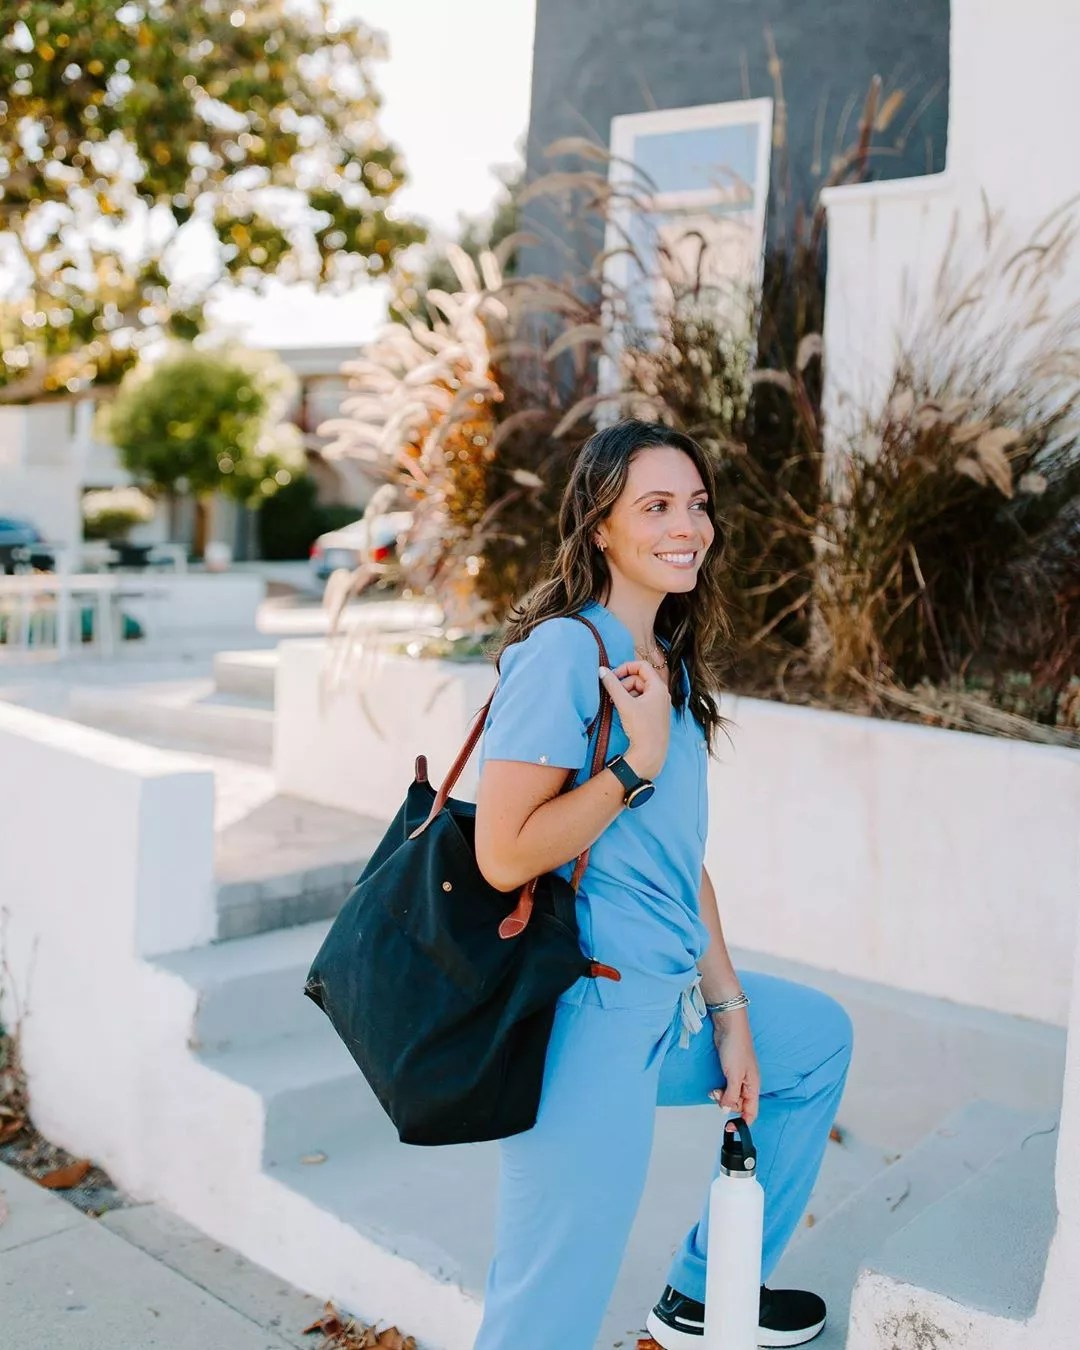 Nurse with a Traveling Bag Approaching Hospital Steps. Photo by Instagram user @becksliveshealthy